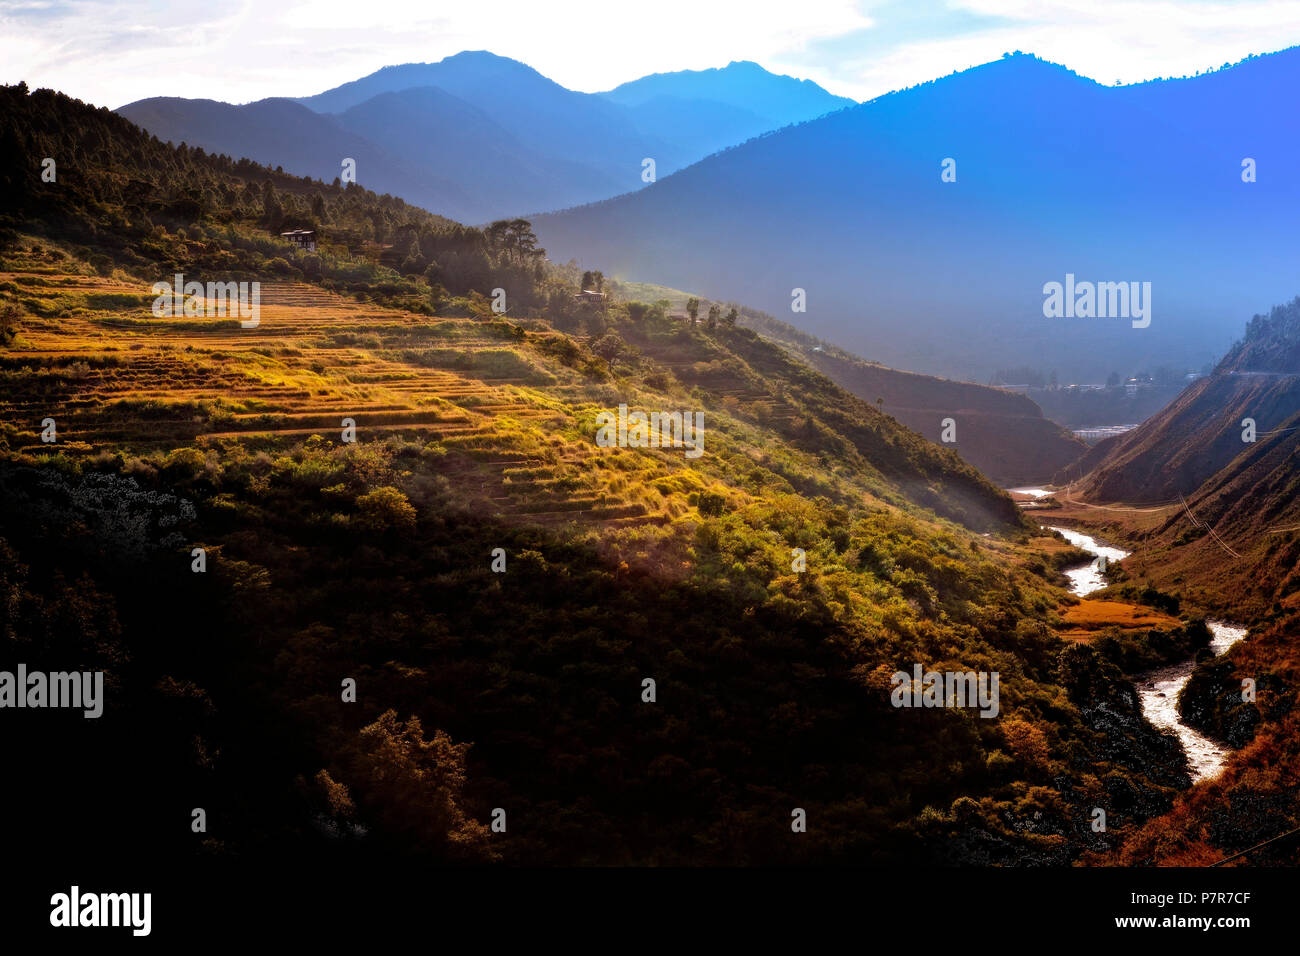 The mountain drive from Thimphu to Punakha through the Himalayan foothills of Bhutan. - Stock Image